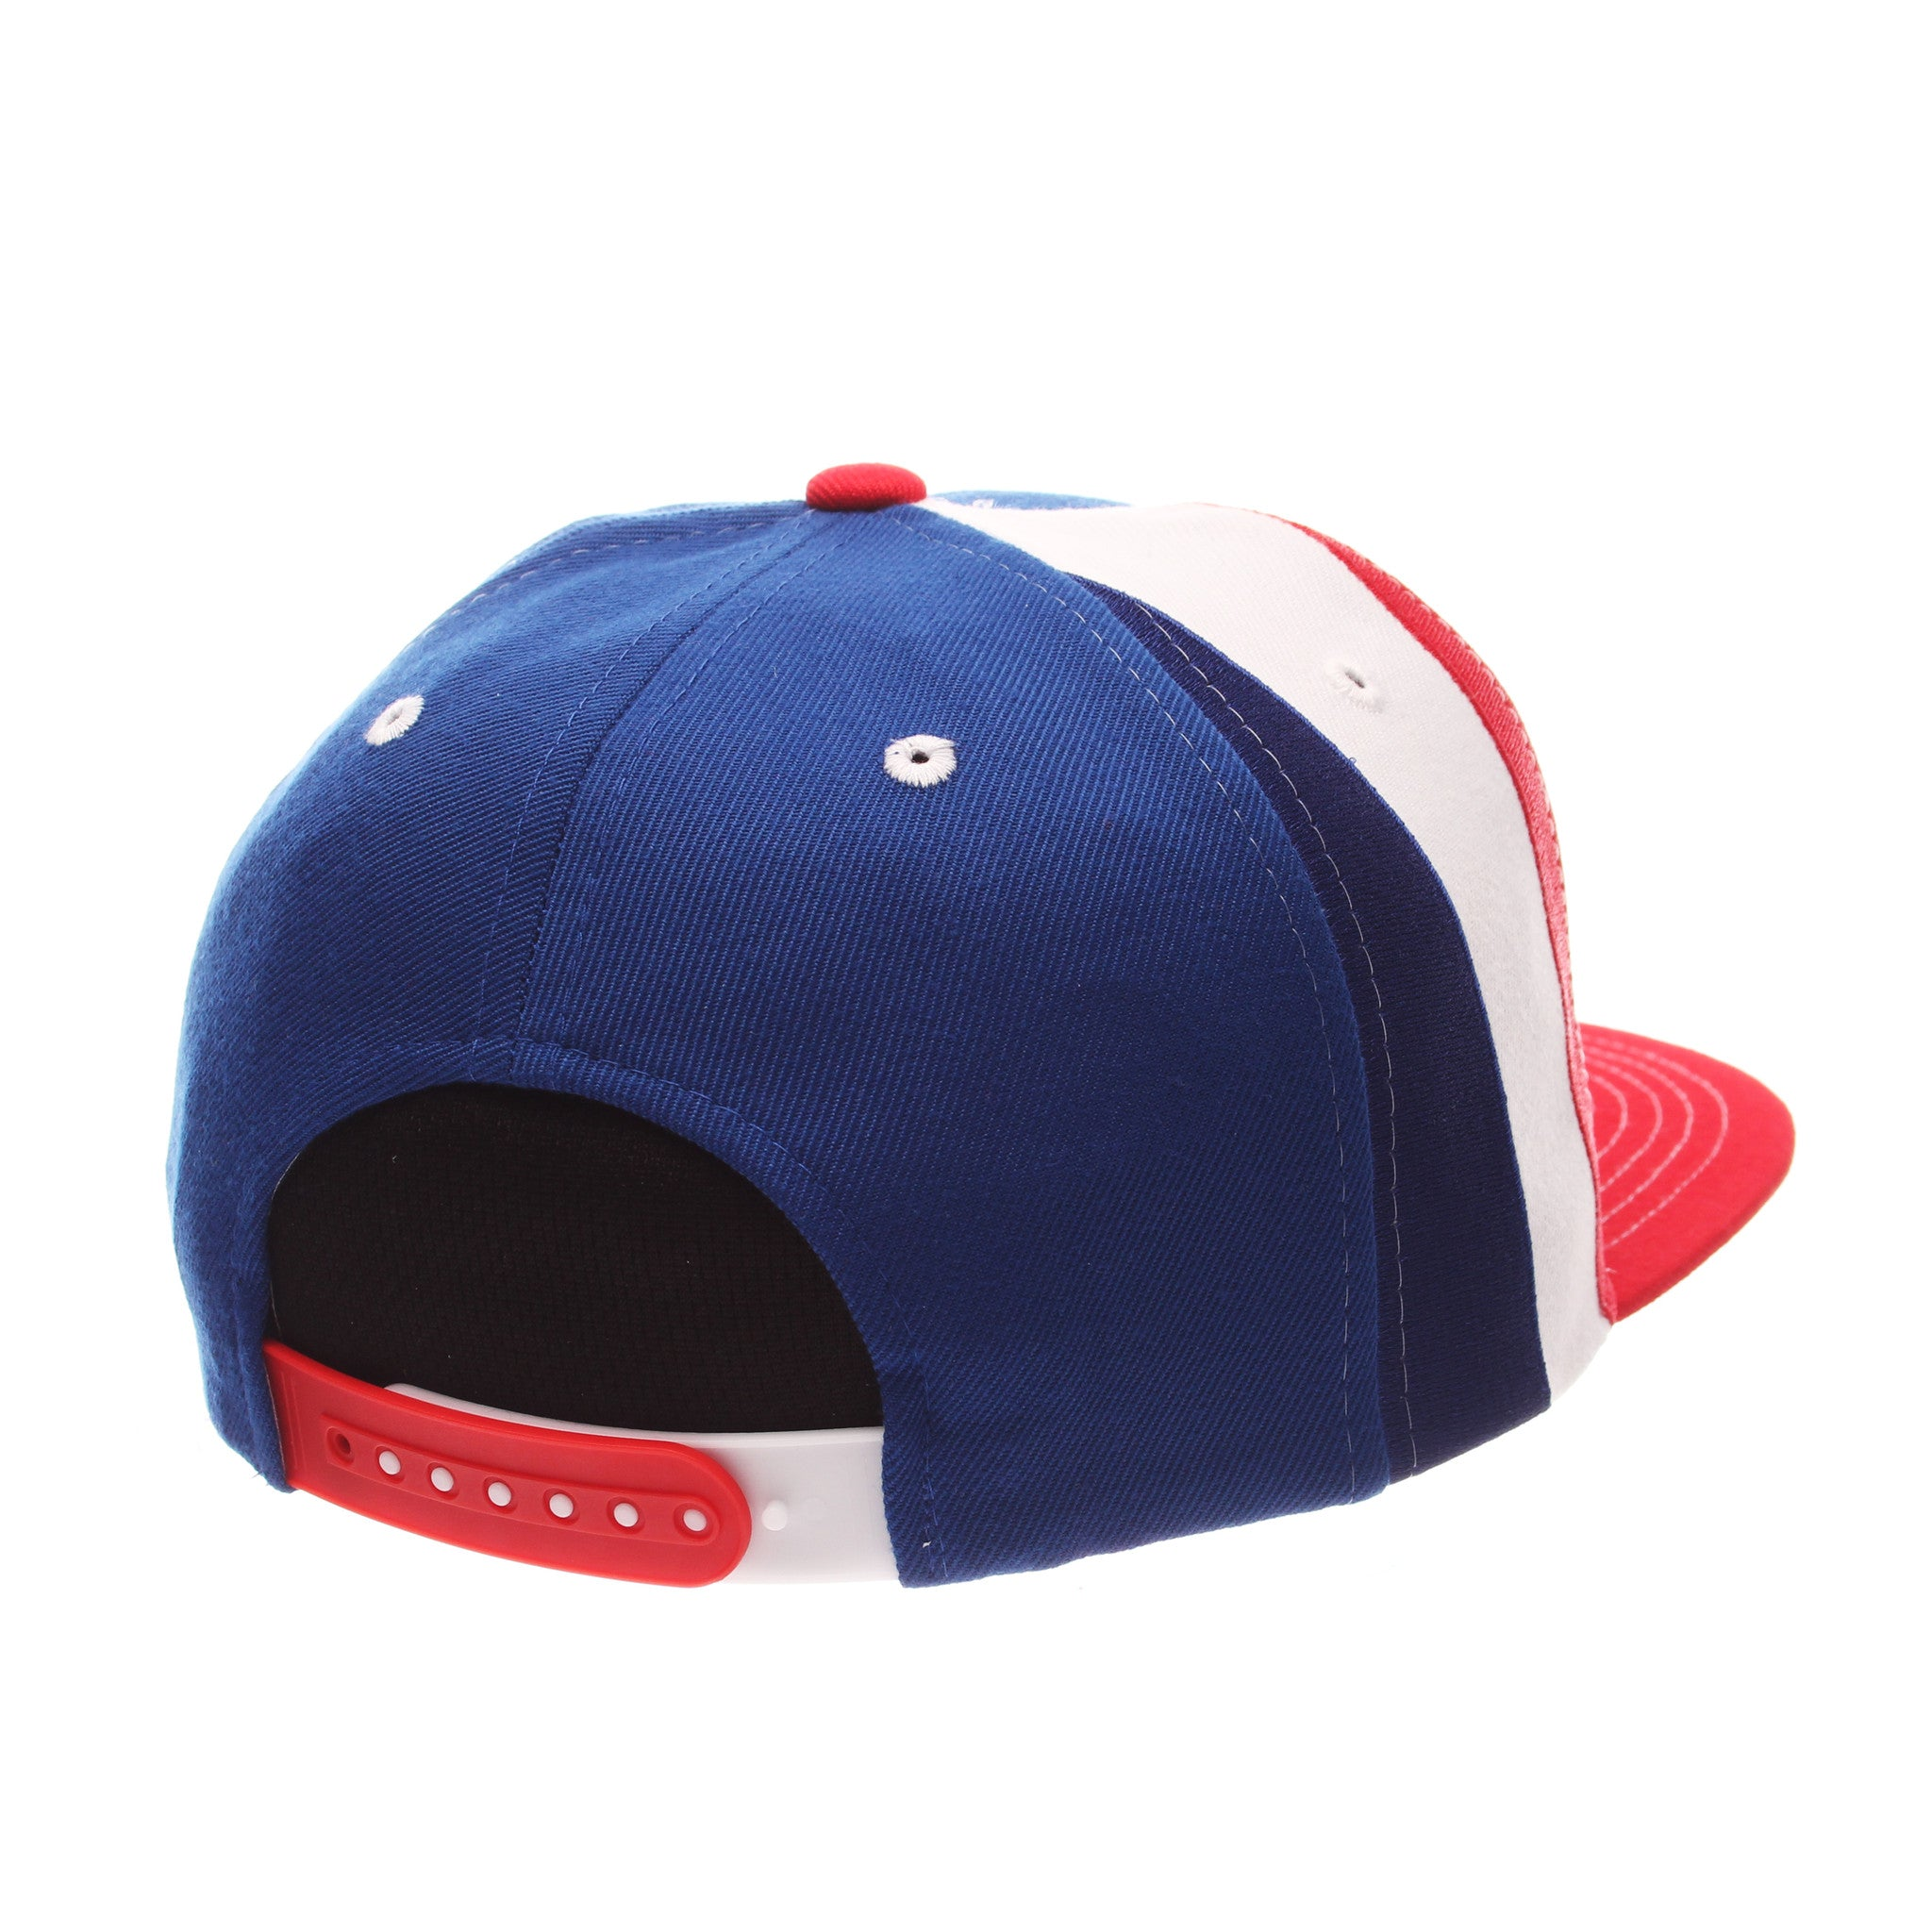 COUNTRY Victory 32/5 (High) (FRANCE W/LINES) Varied Colors Varied Panels Adjustable hats by Zephyr